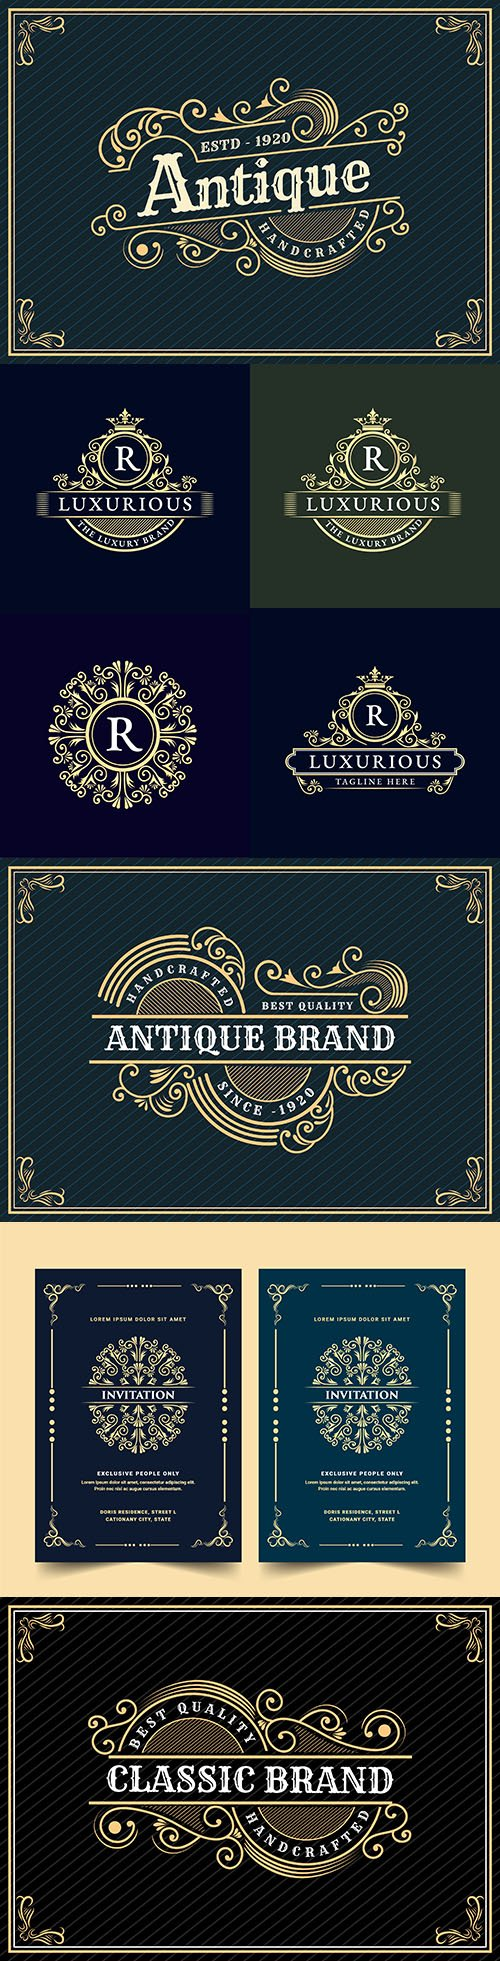 Luxurious vintage logo design with decorative frame